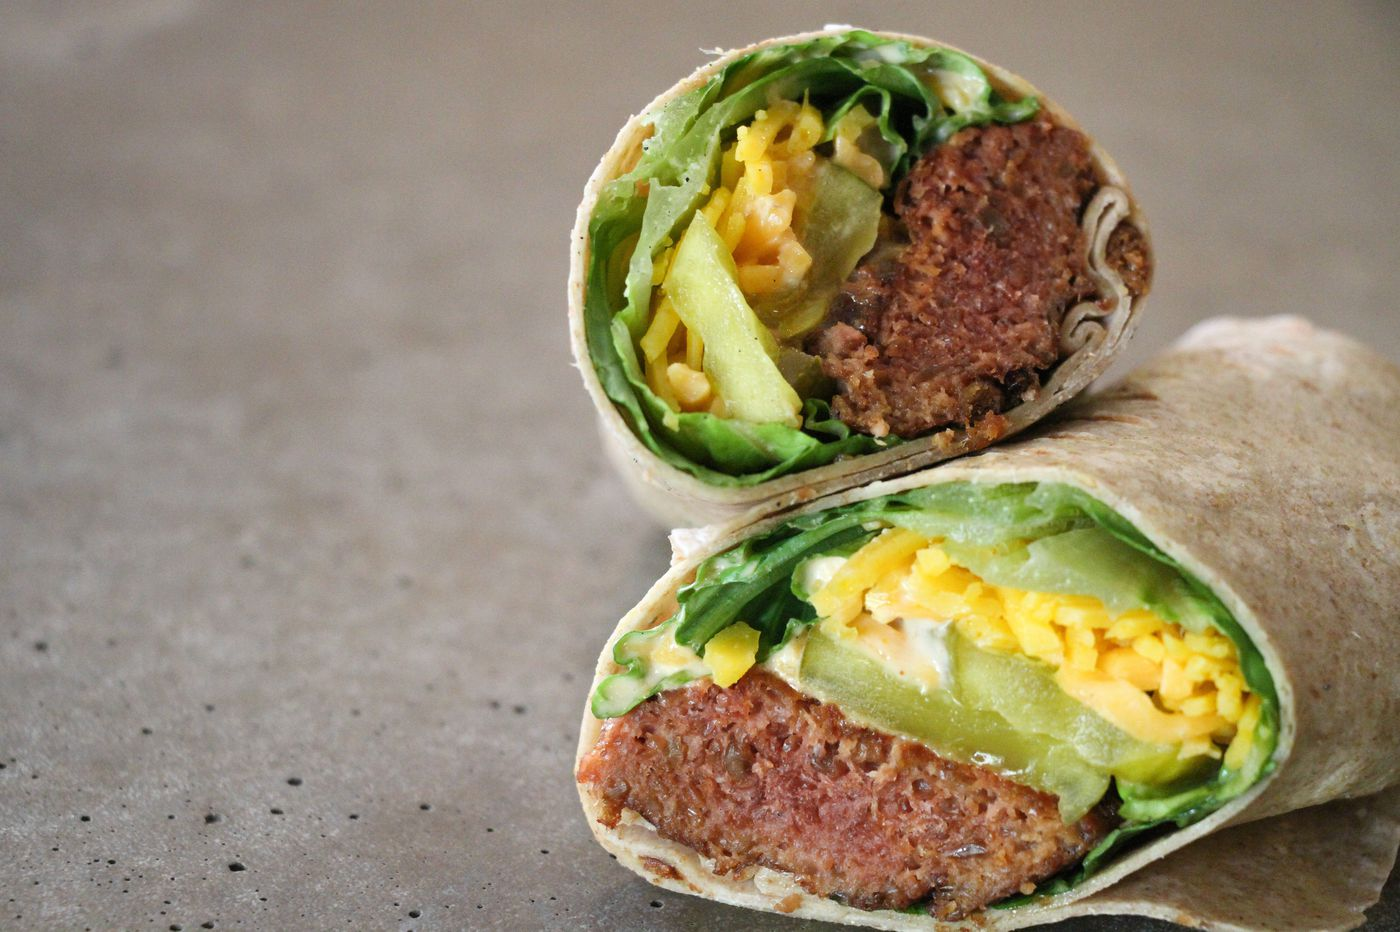 More than just burgers, Impossible and Beyond 'meat' are showing up in wraps, bowls, and quesadillas